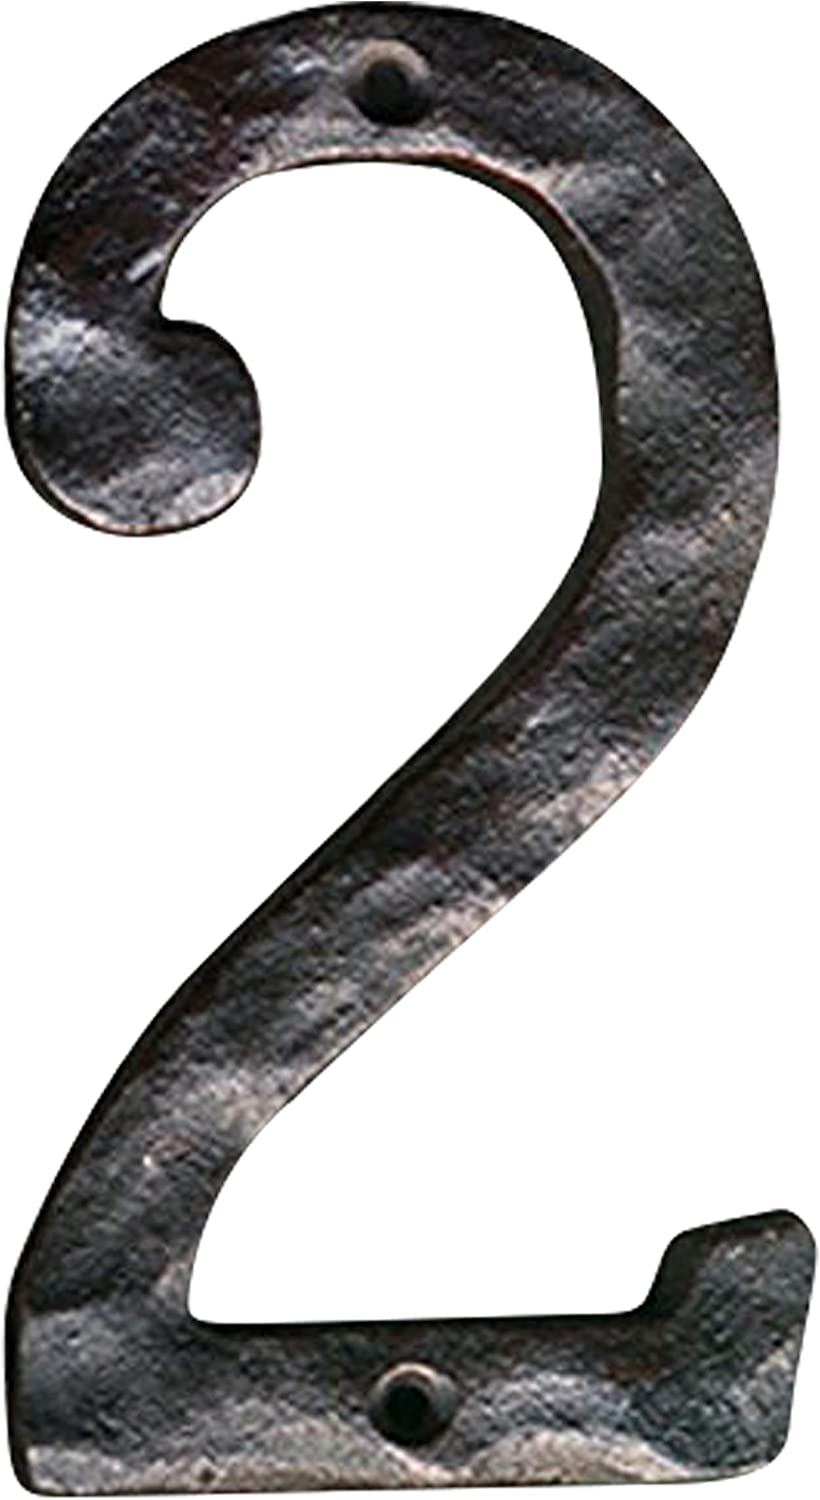 NACH js-rusticnumber-2 House Numbers, 5.5 Inch, Rustic Cast Iron